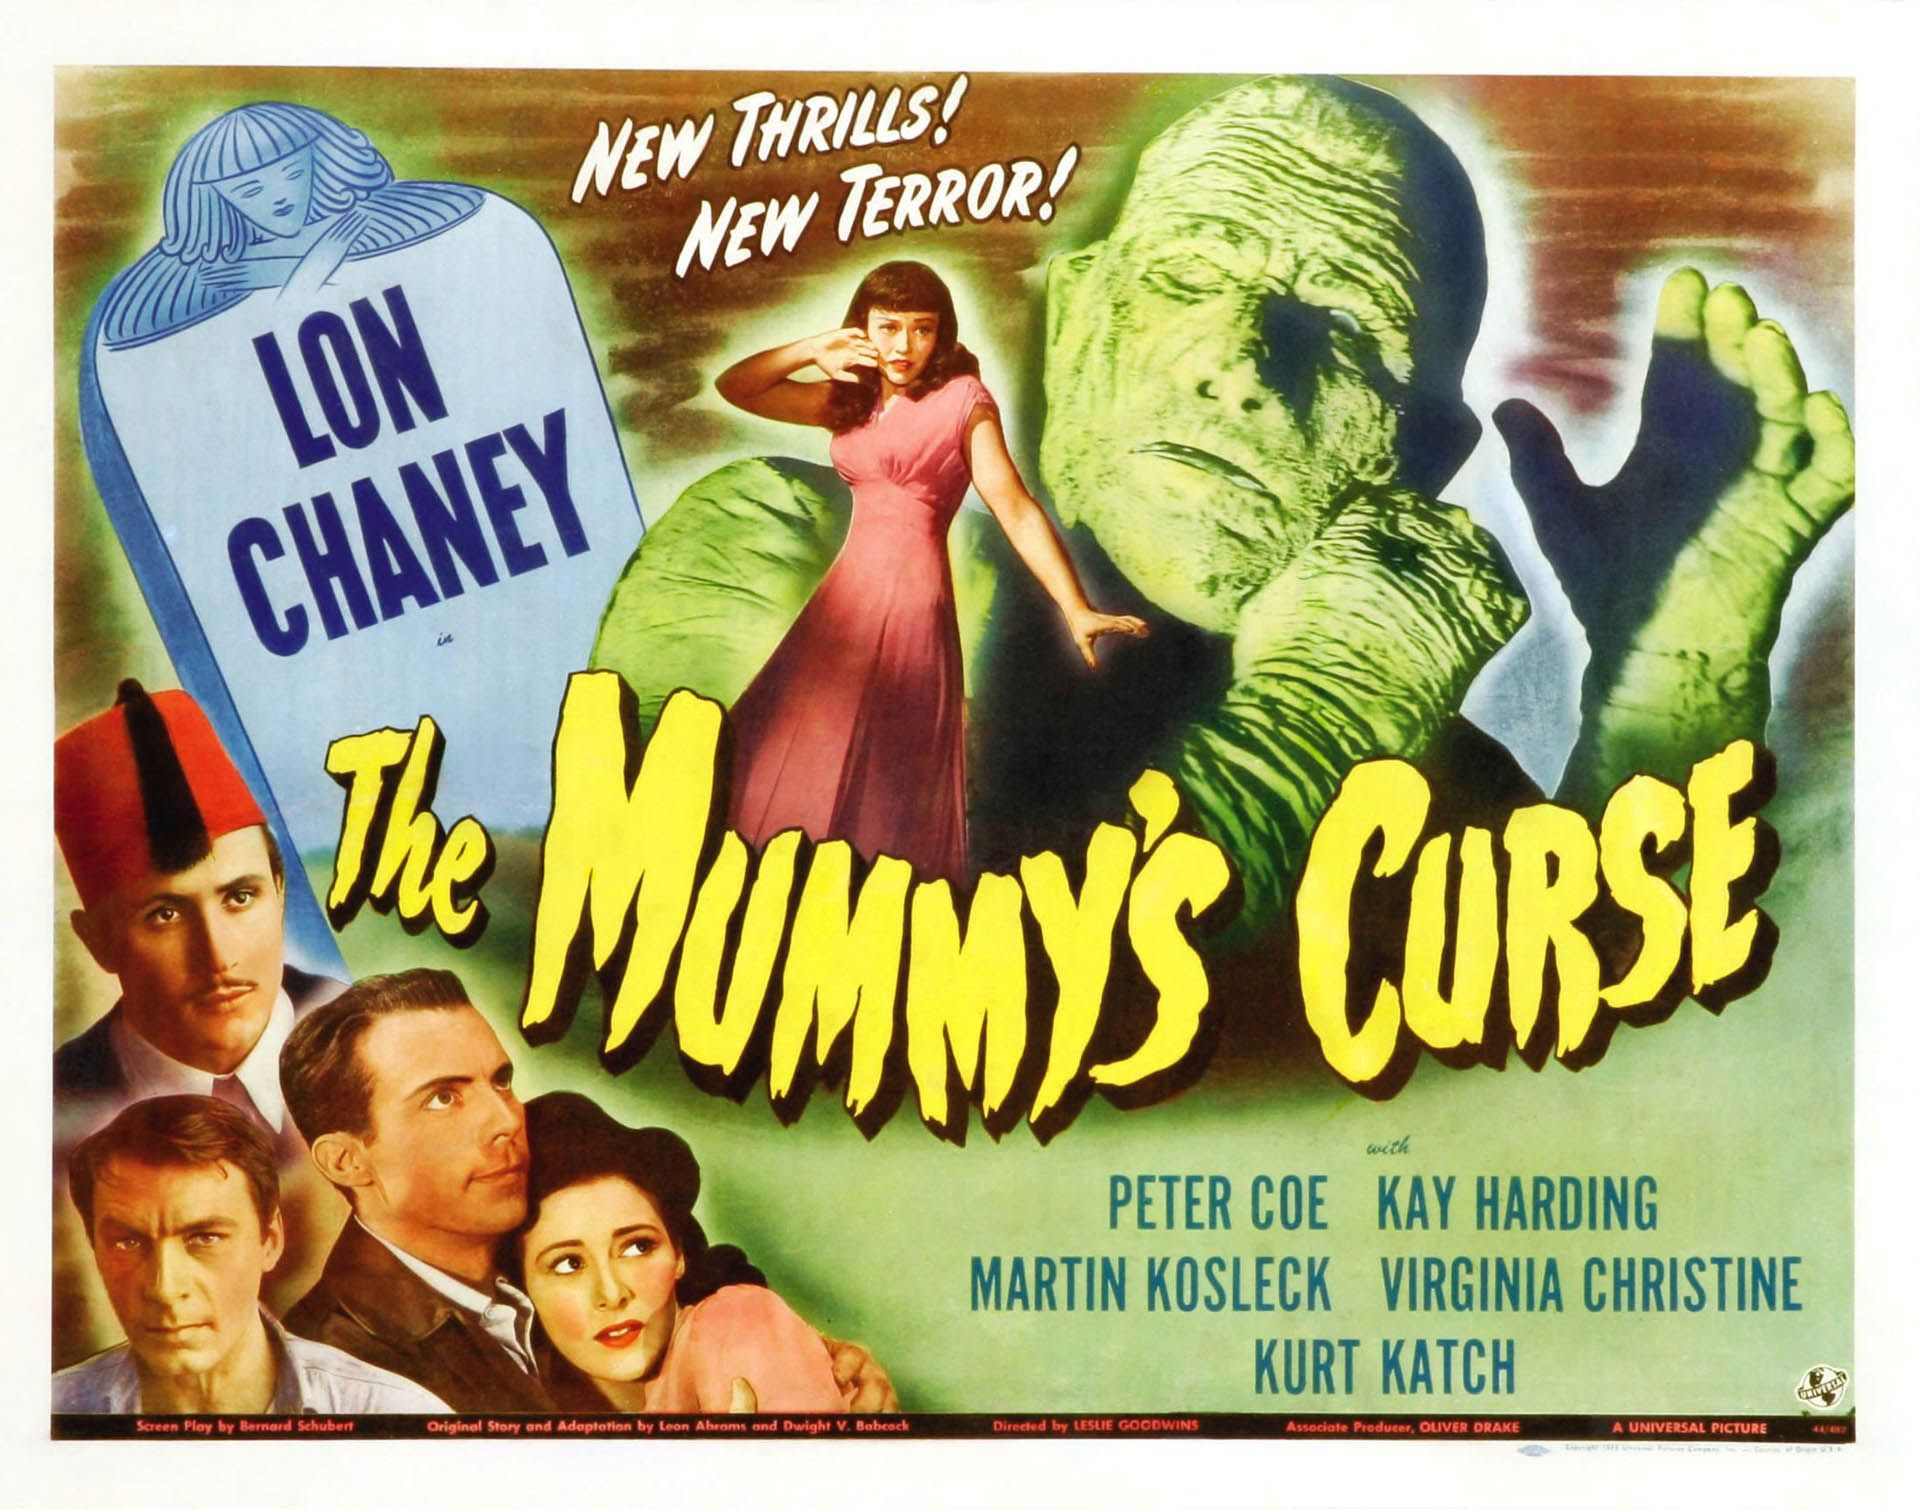 The Mummys Curse Ii Vintage 1940s Movie Posters Wallpaper Image Classic Horror Movies Posters Horror Movie Posters Movie Posters